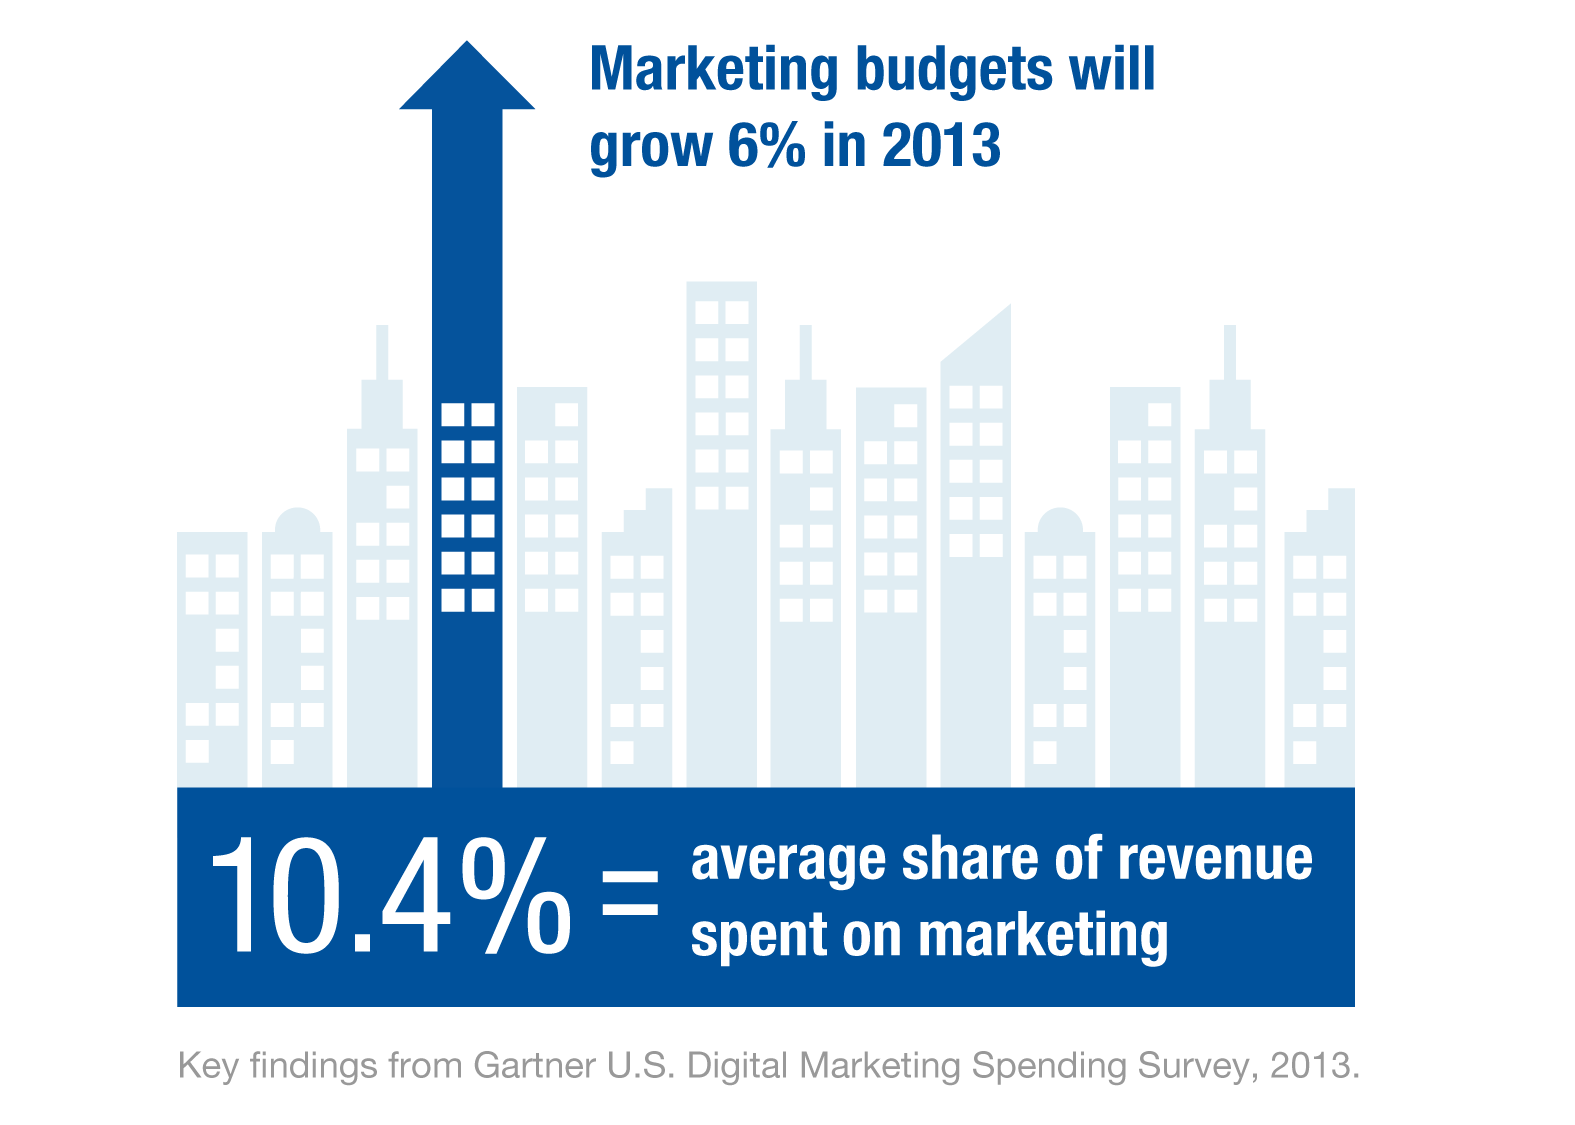 Gartner Digital Marketing Study 2013